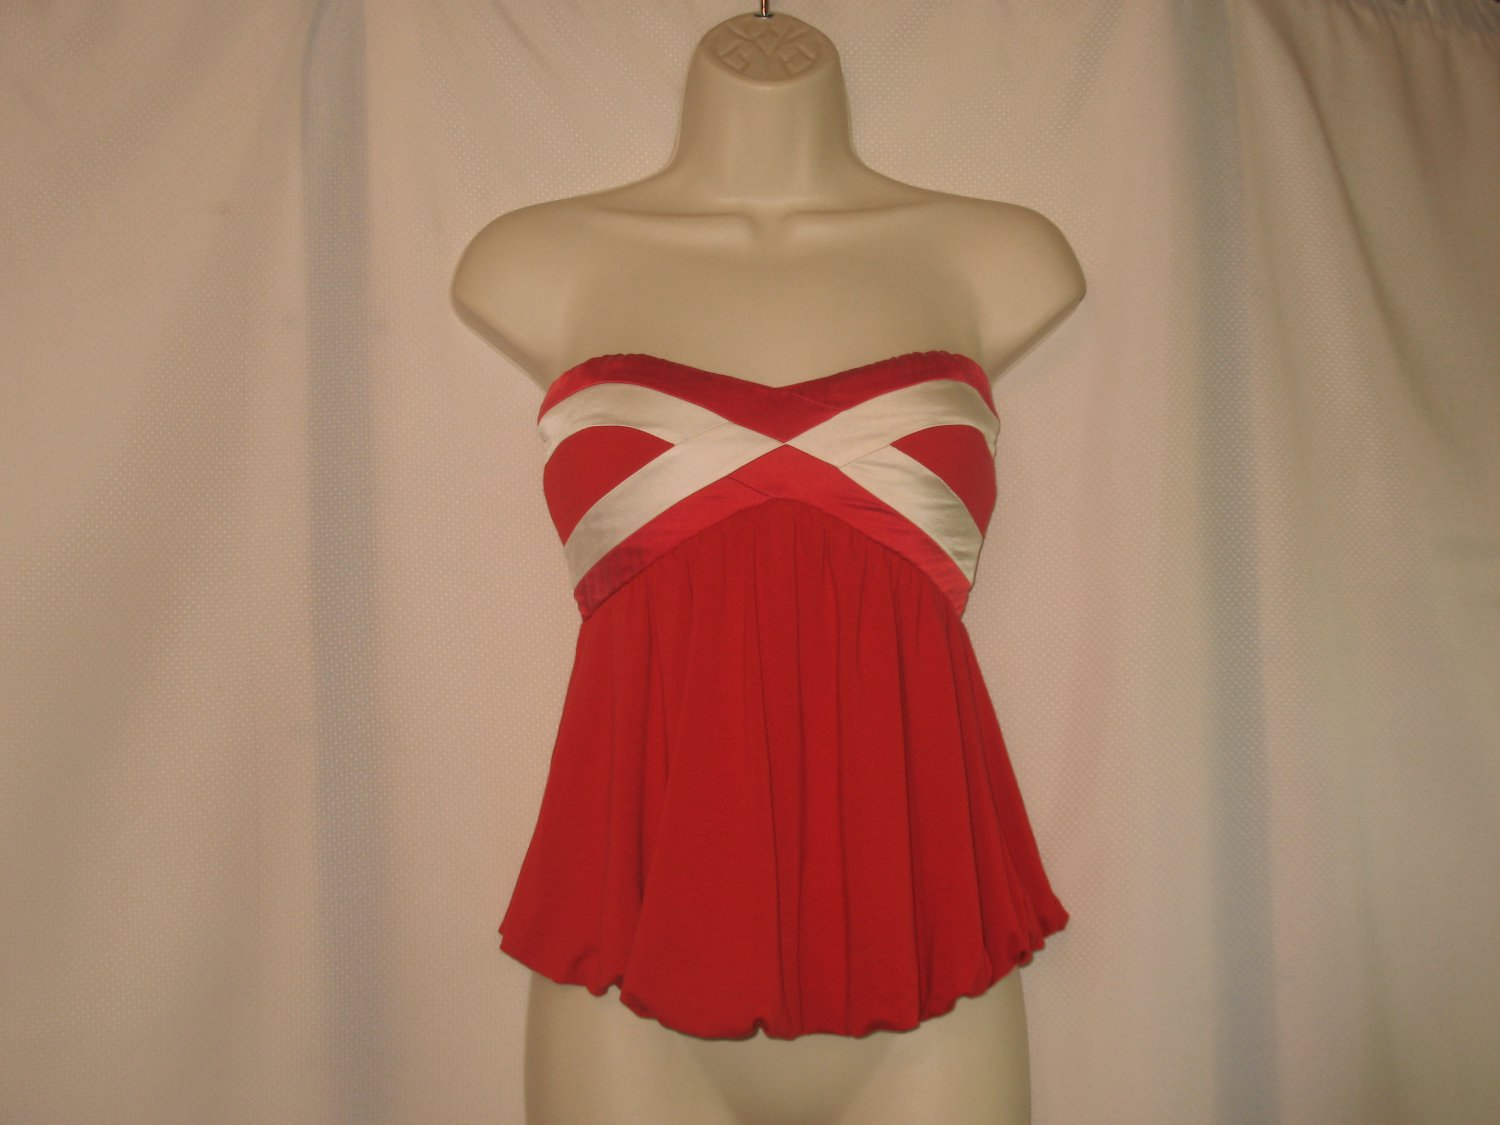 Bebe xs Red White Contrast Silk Strapless Top Nautical Top Bubble Hem Rayon